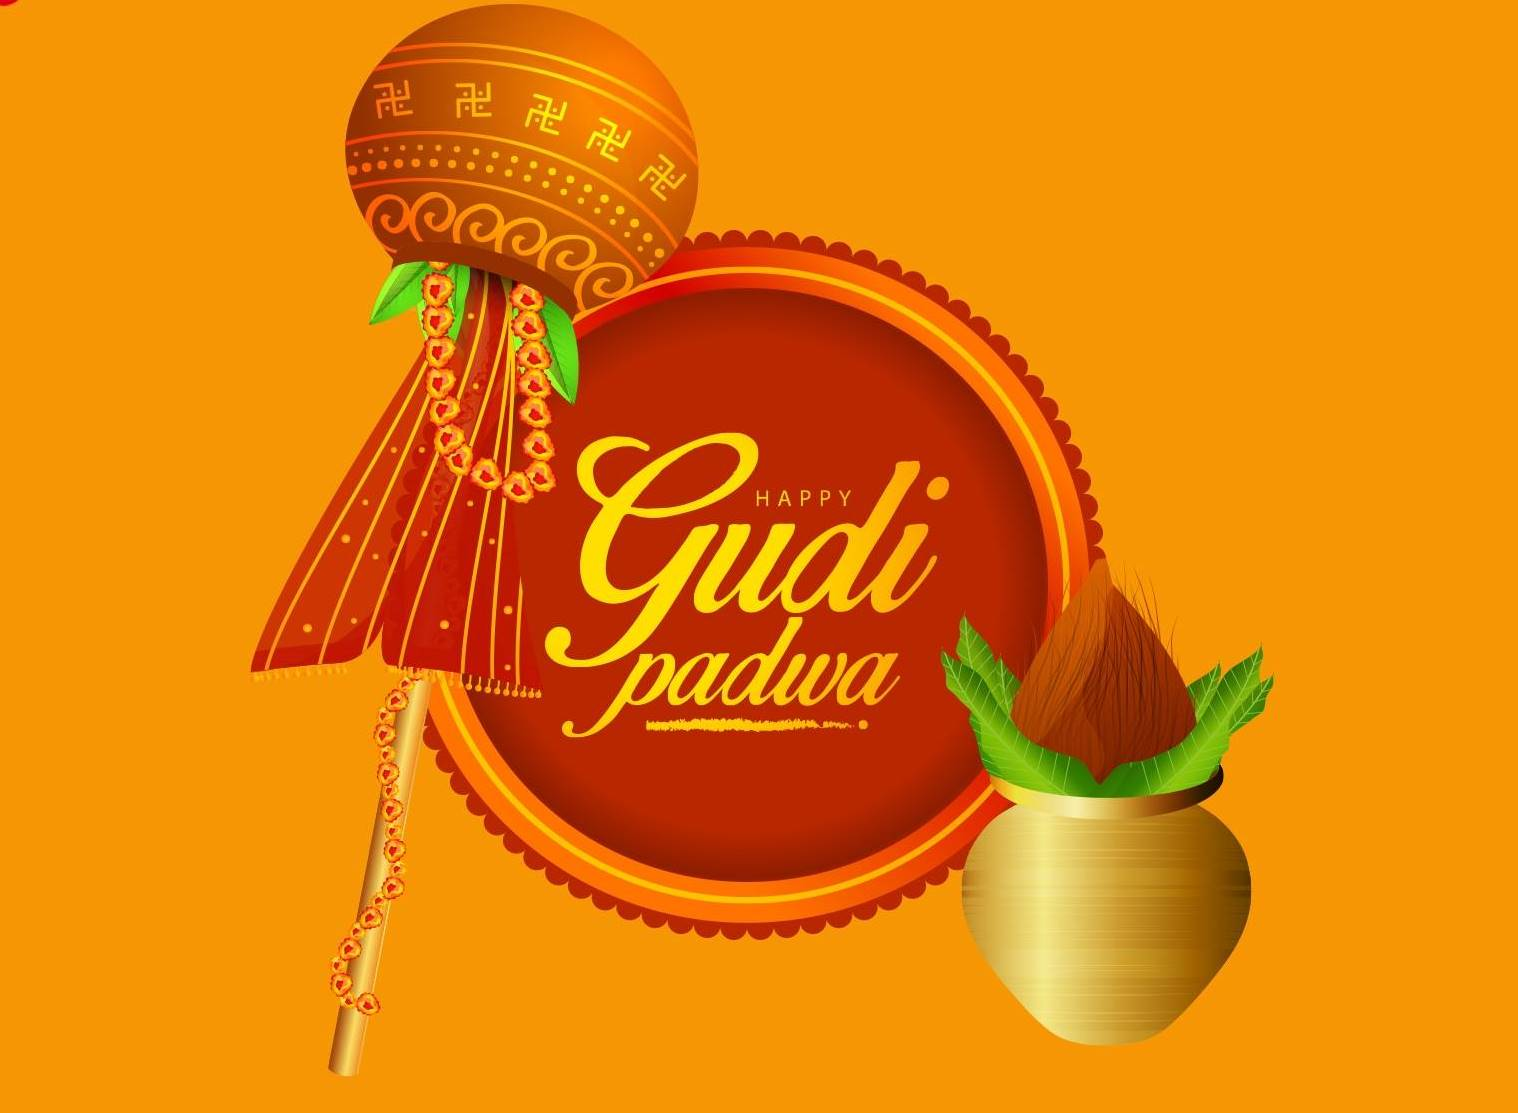 short essay on gudi padwa in english